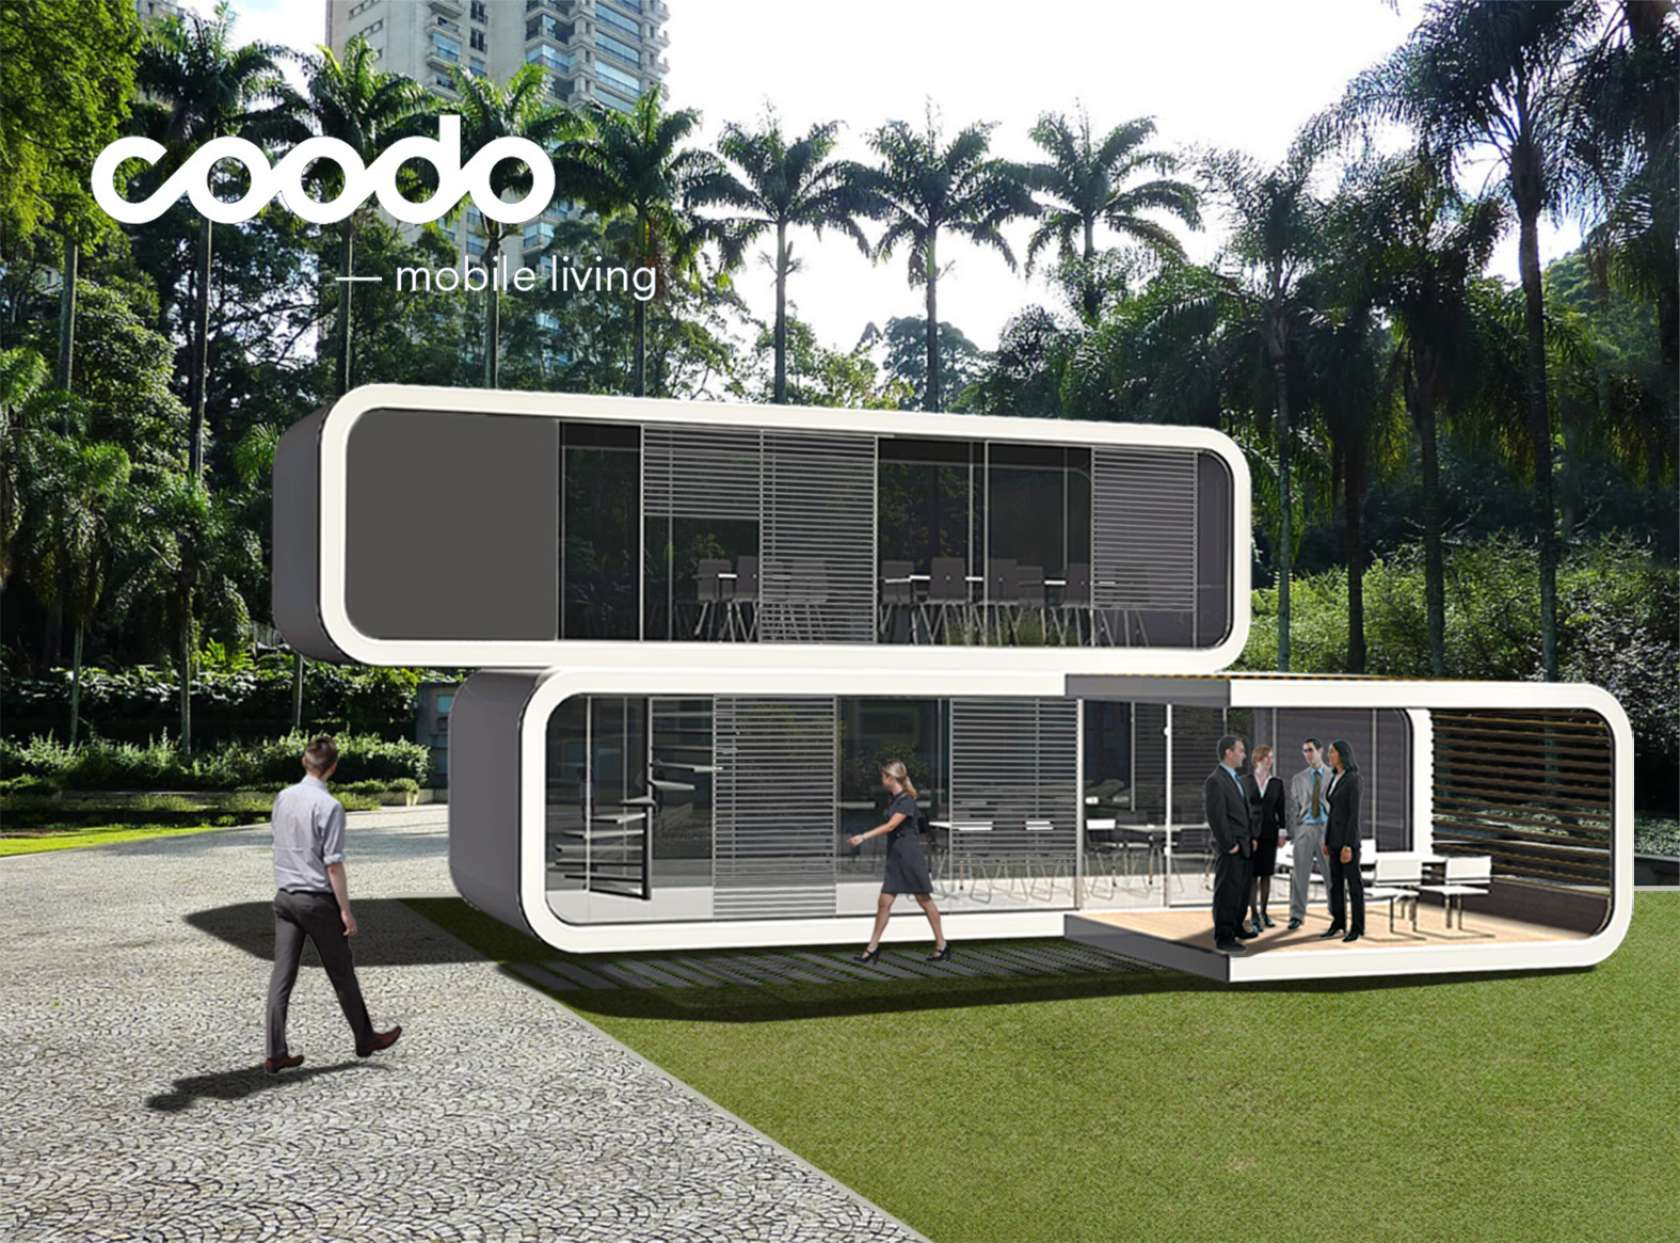 Coodo mobile living architizer for Mobile living